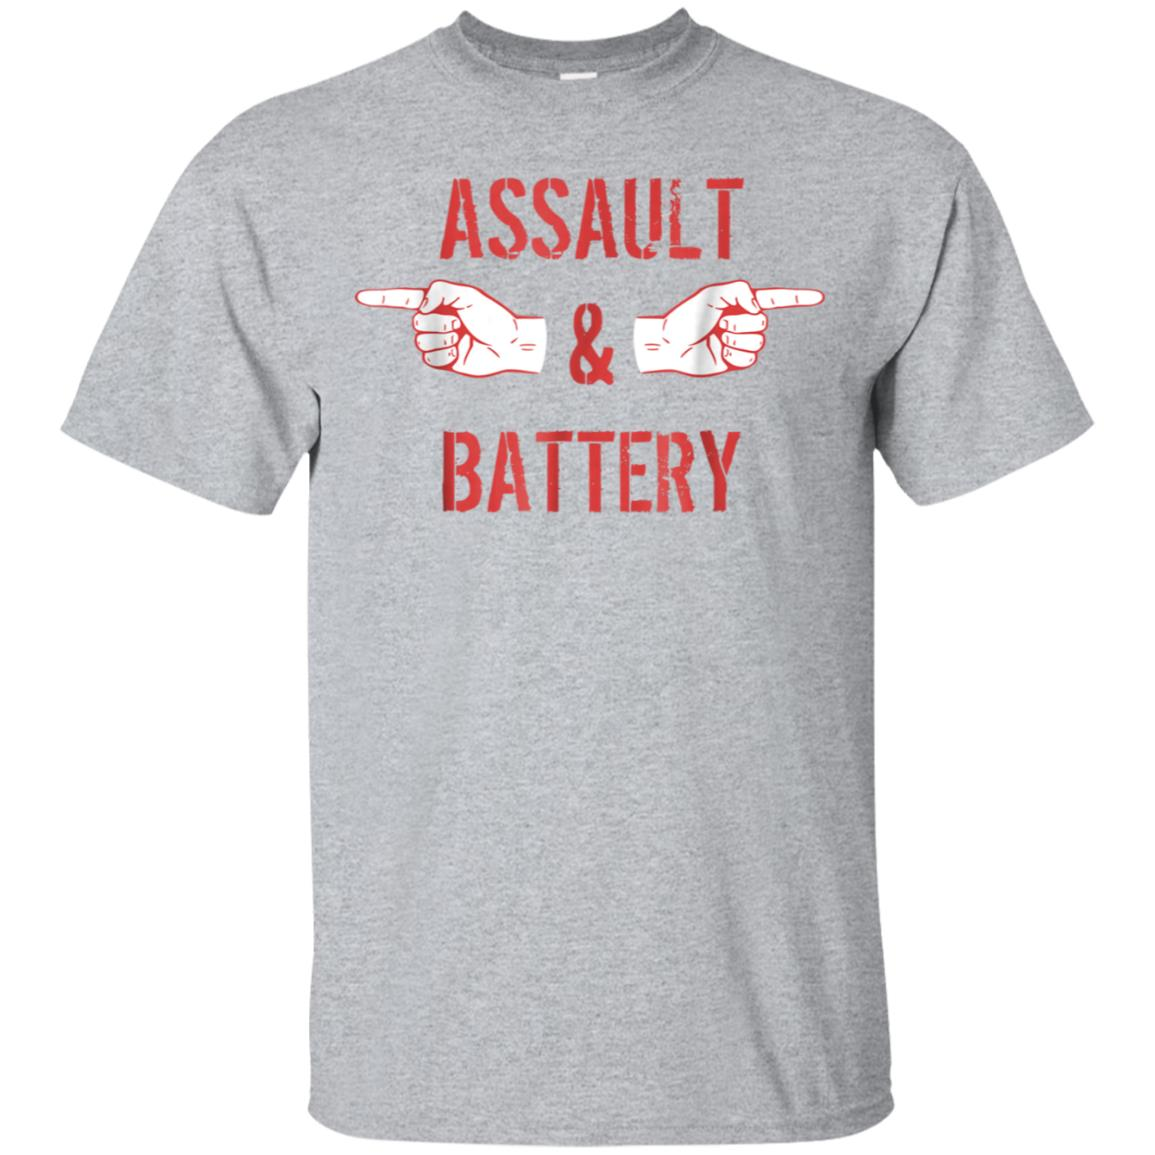 Assault And Battery funny T Shirt for men 99promocode